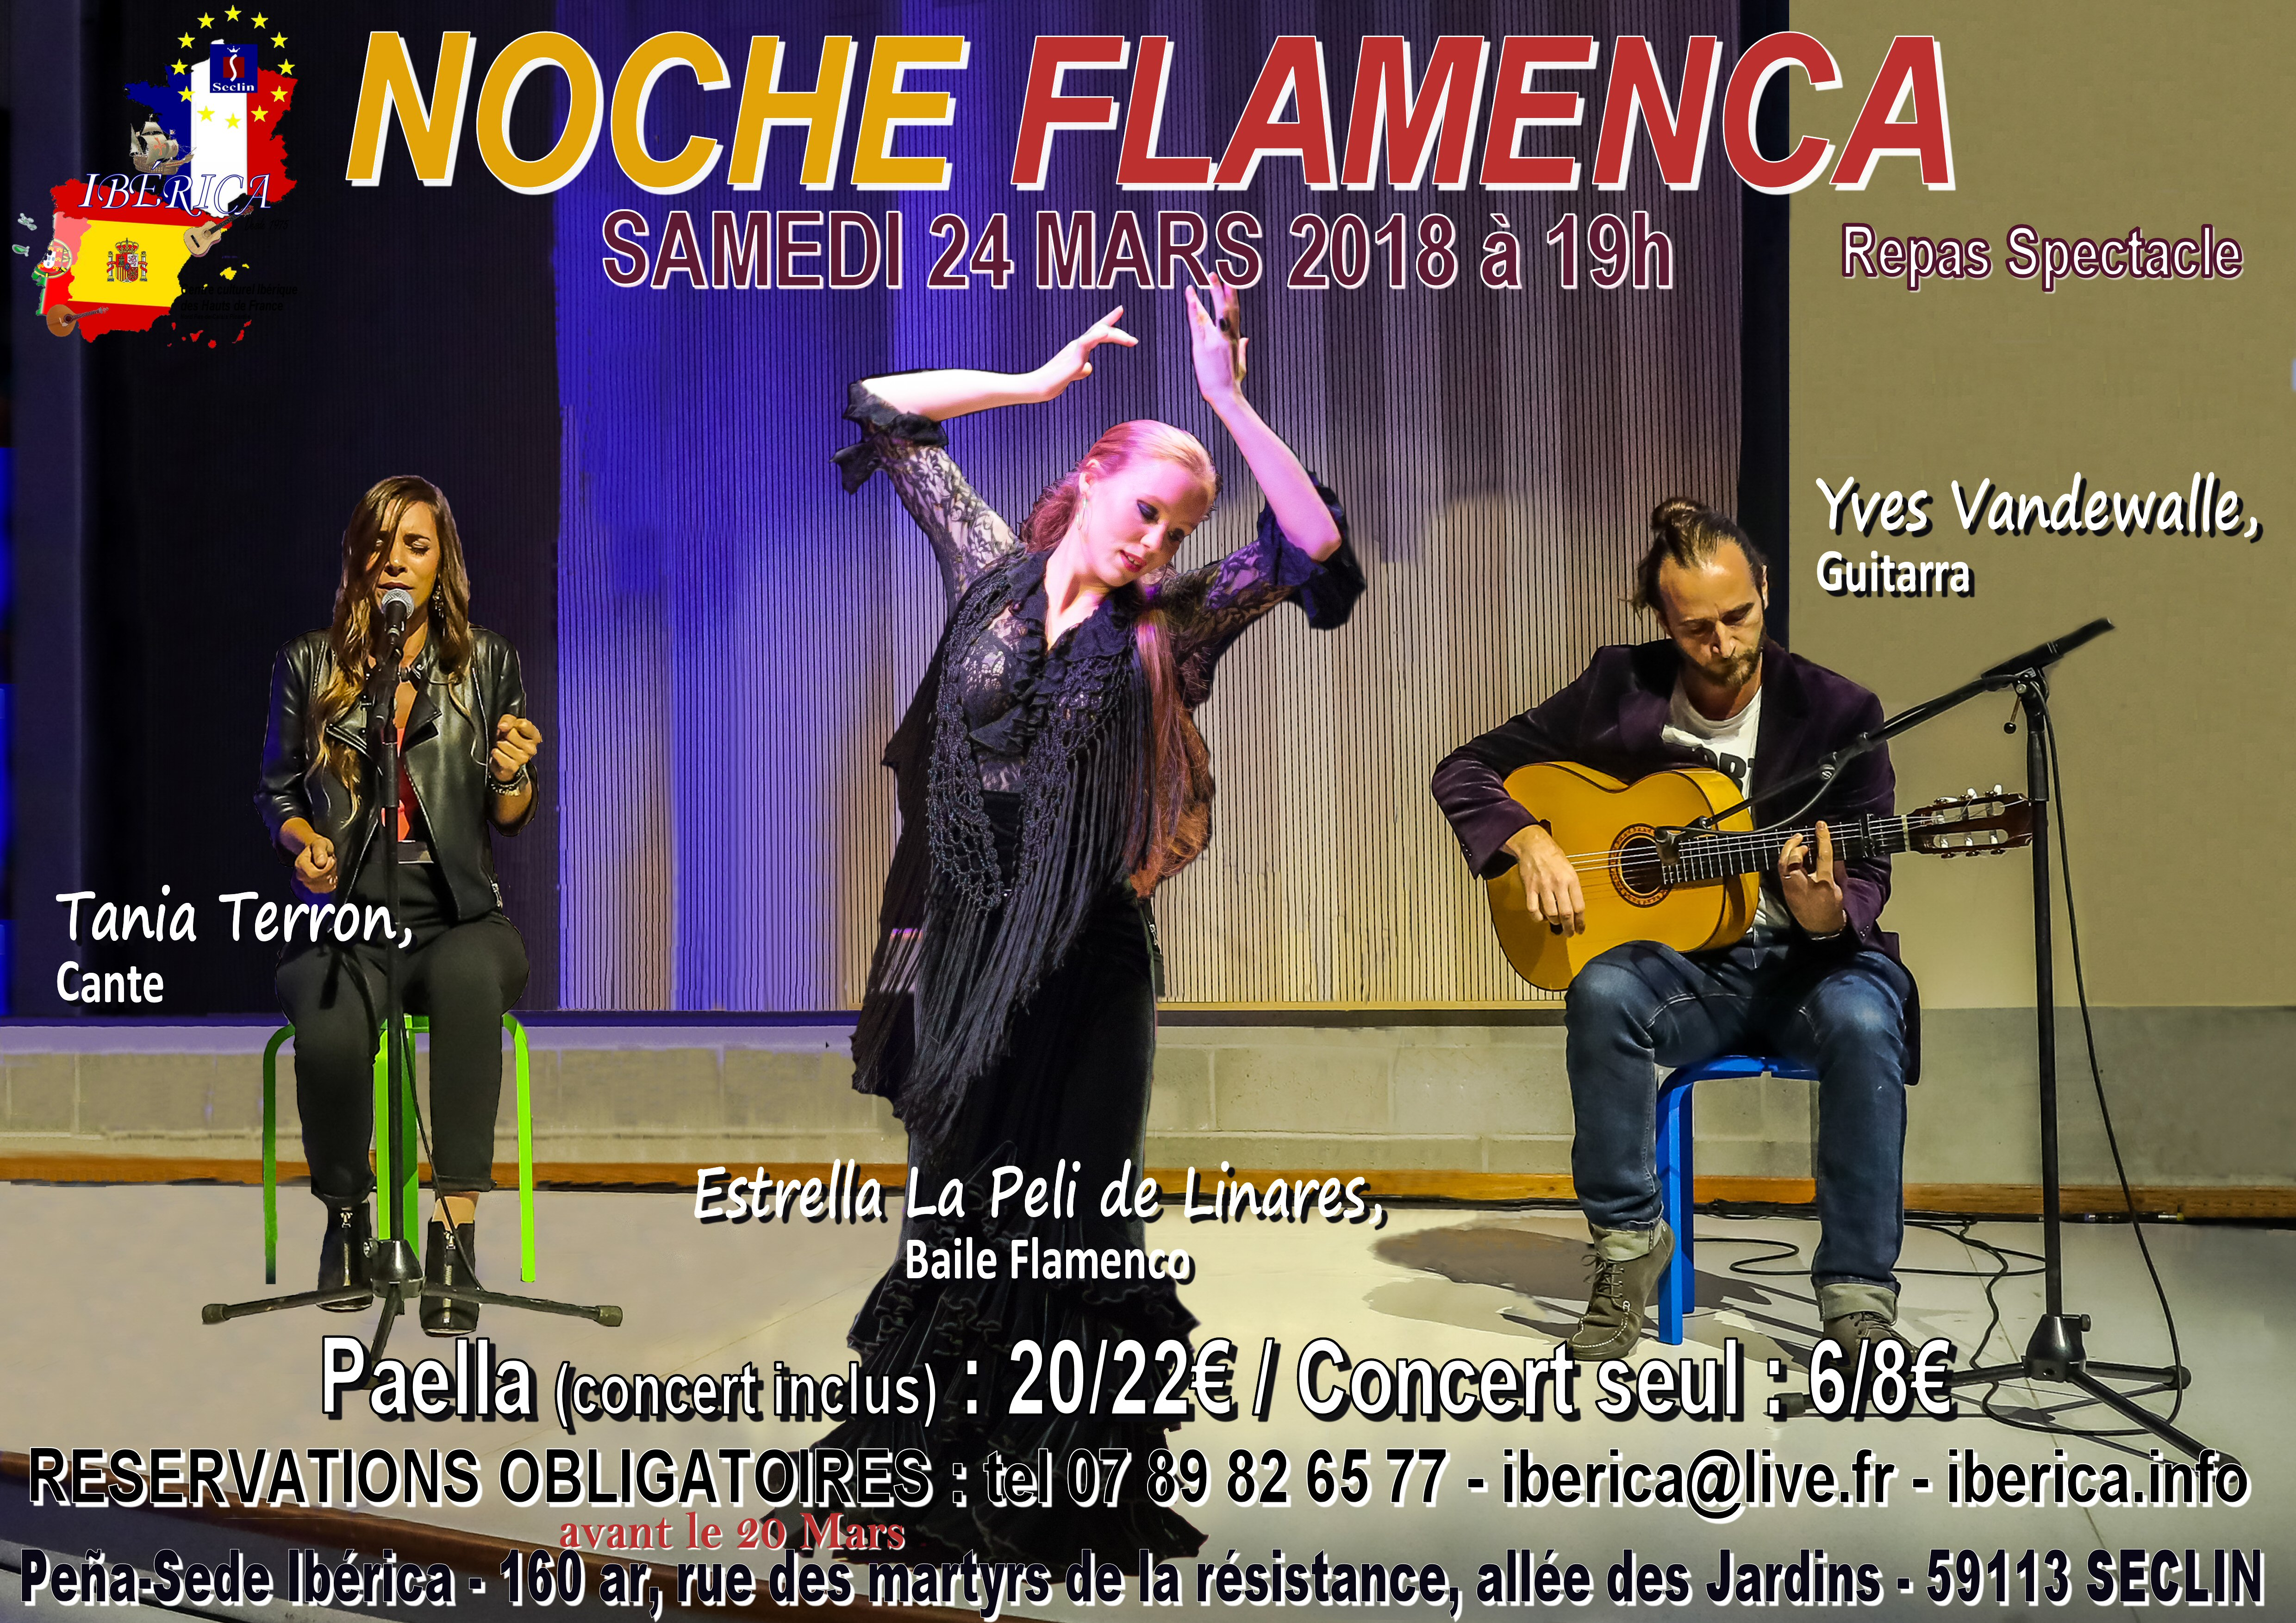 TABLAO FLAMENCO LILLE SECLIN NORD